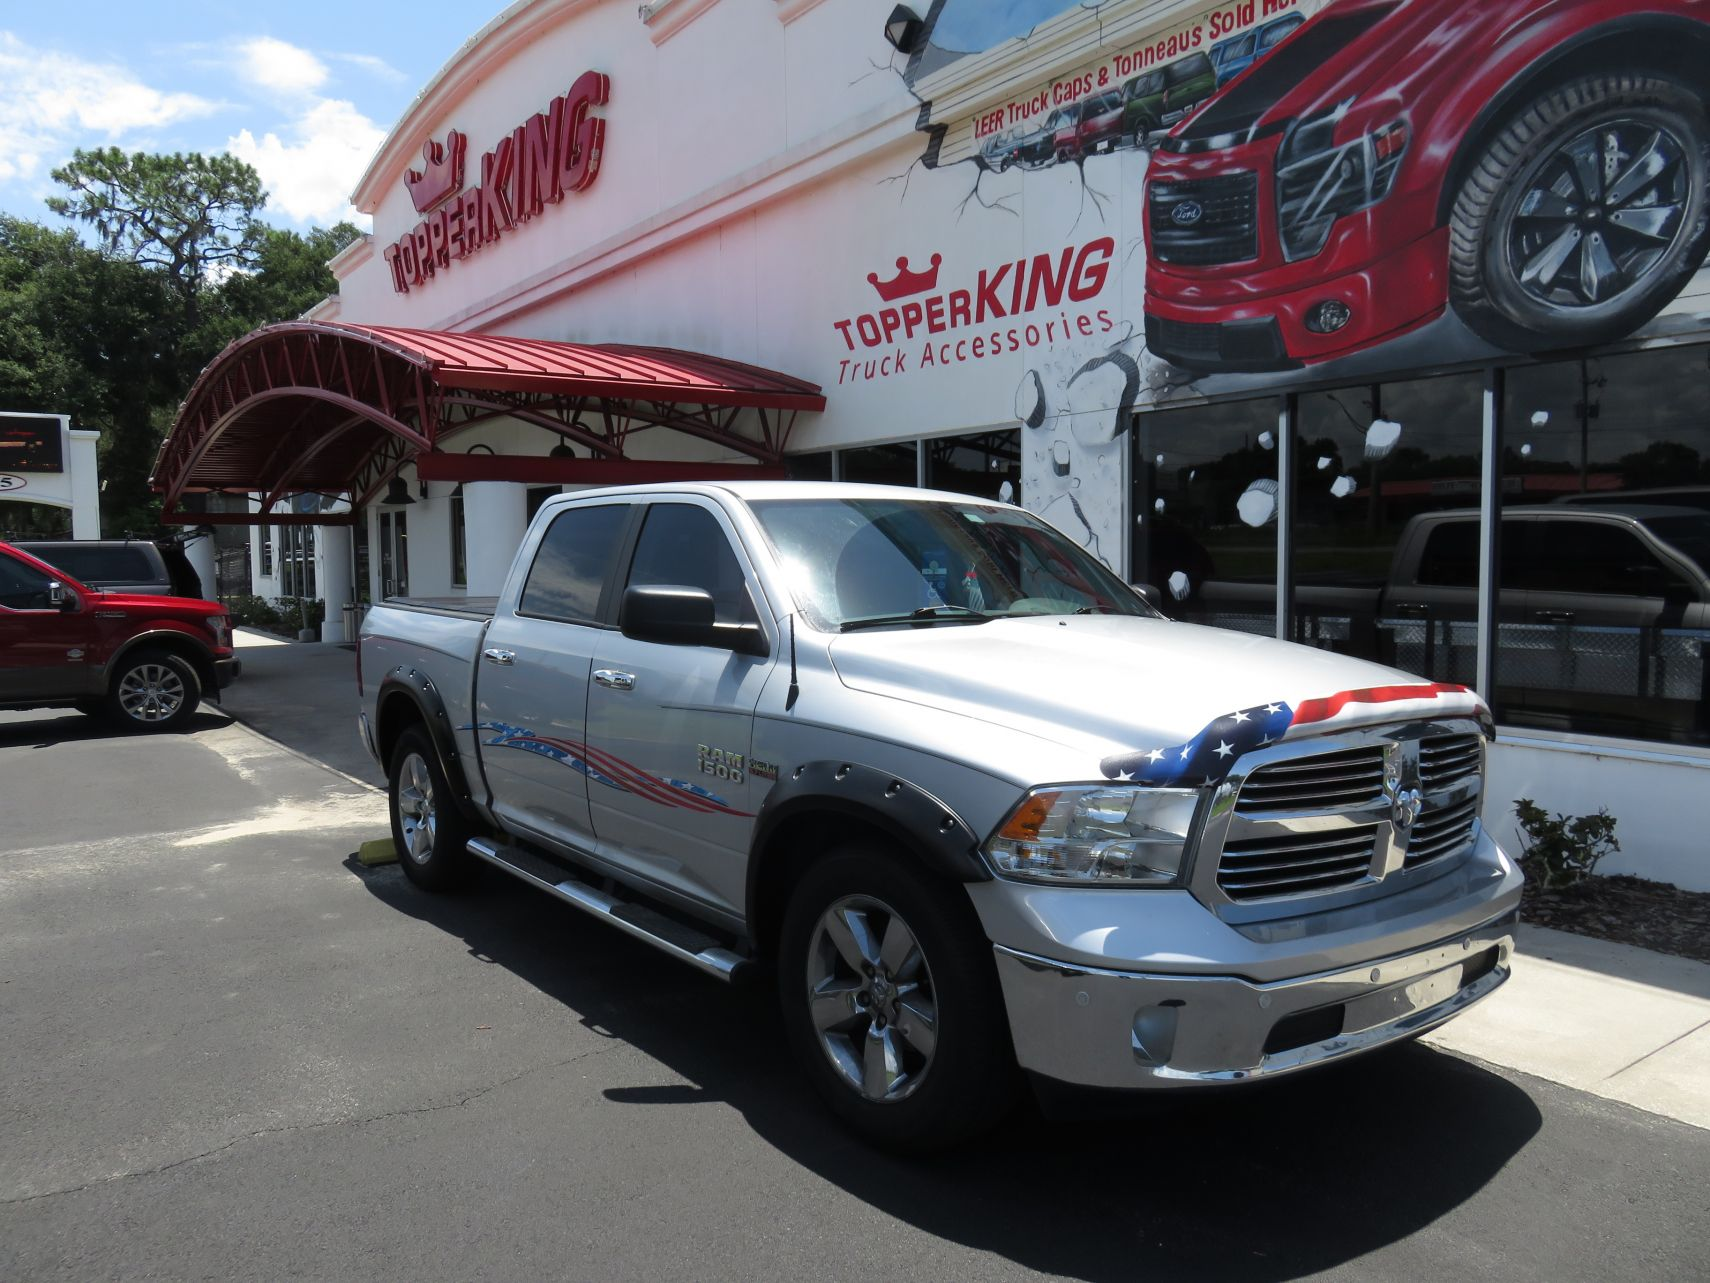 2015 Archives Topperking Providing All Of Tampa Bay Chevy Silverado Truck Accessories Silver Dodge Ram 1500 Patriotic Decals Hood Guard